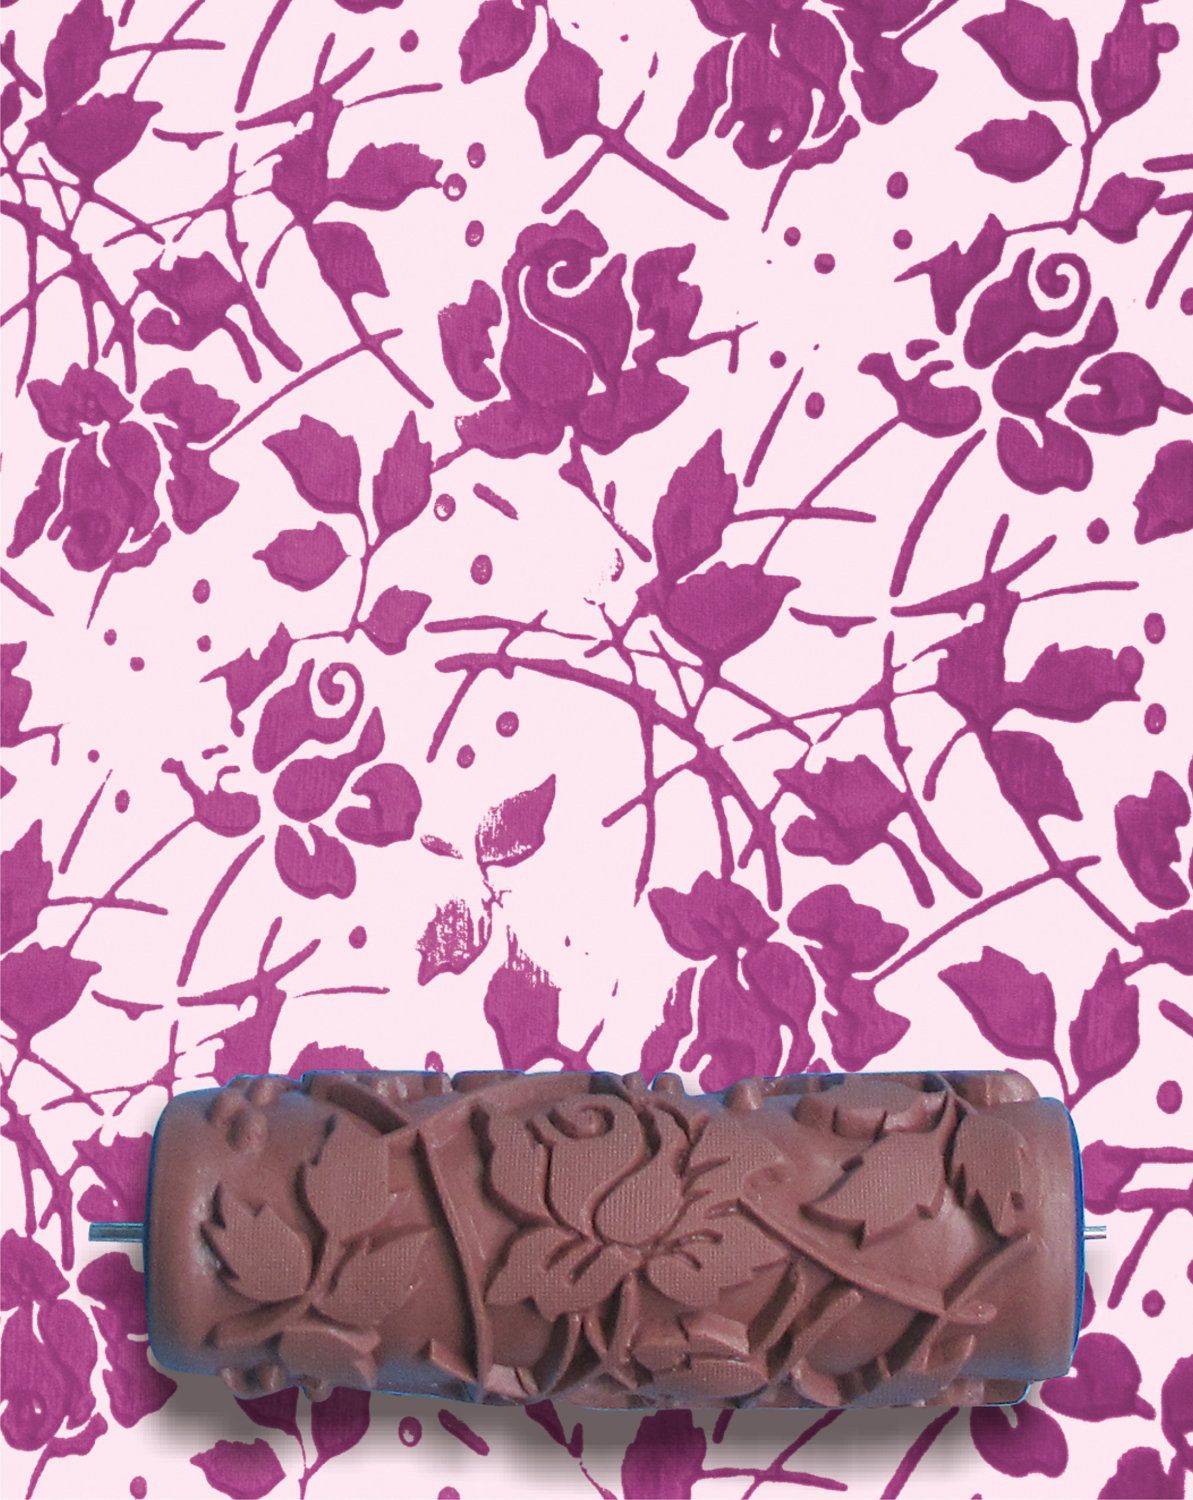 Pattern Paint Roller In Sweet Sea Roses Design By Notwallpaper 22 50 Patterned Paint Rollers Painting Patterns Wall Painting